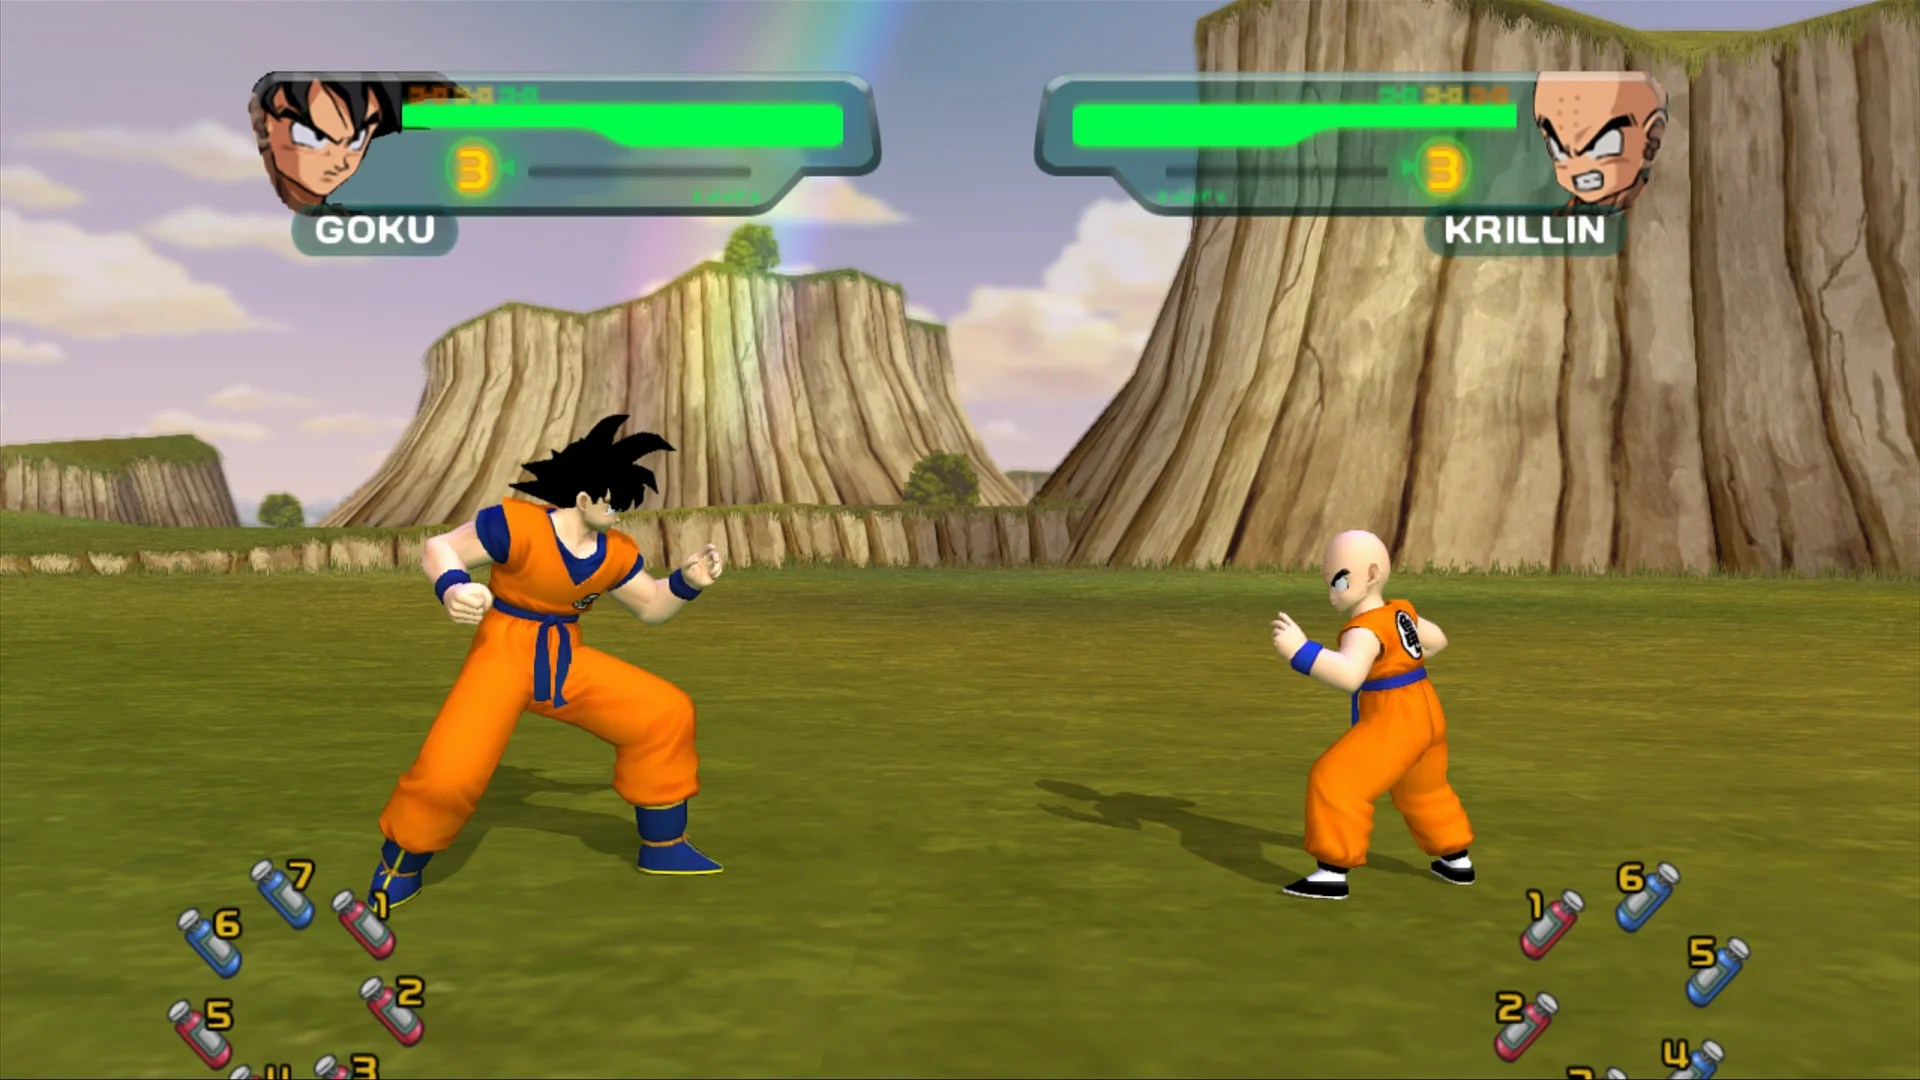 Dragon Hd Xbox Collection 360 Budokai Ball 3 Z